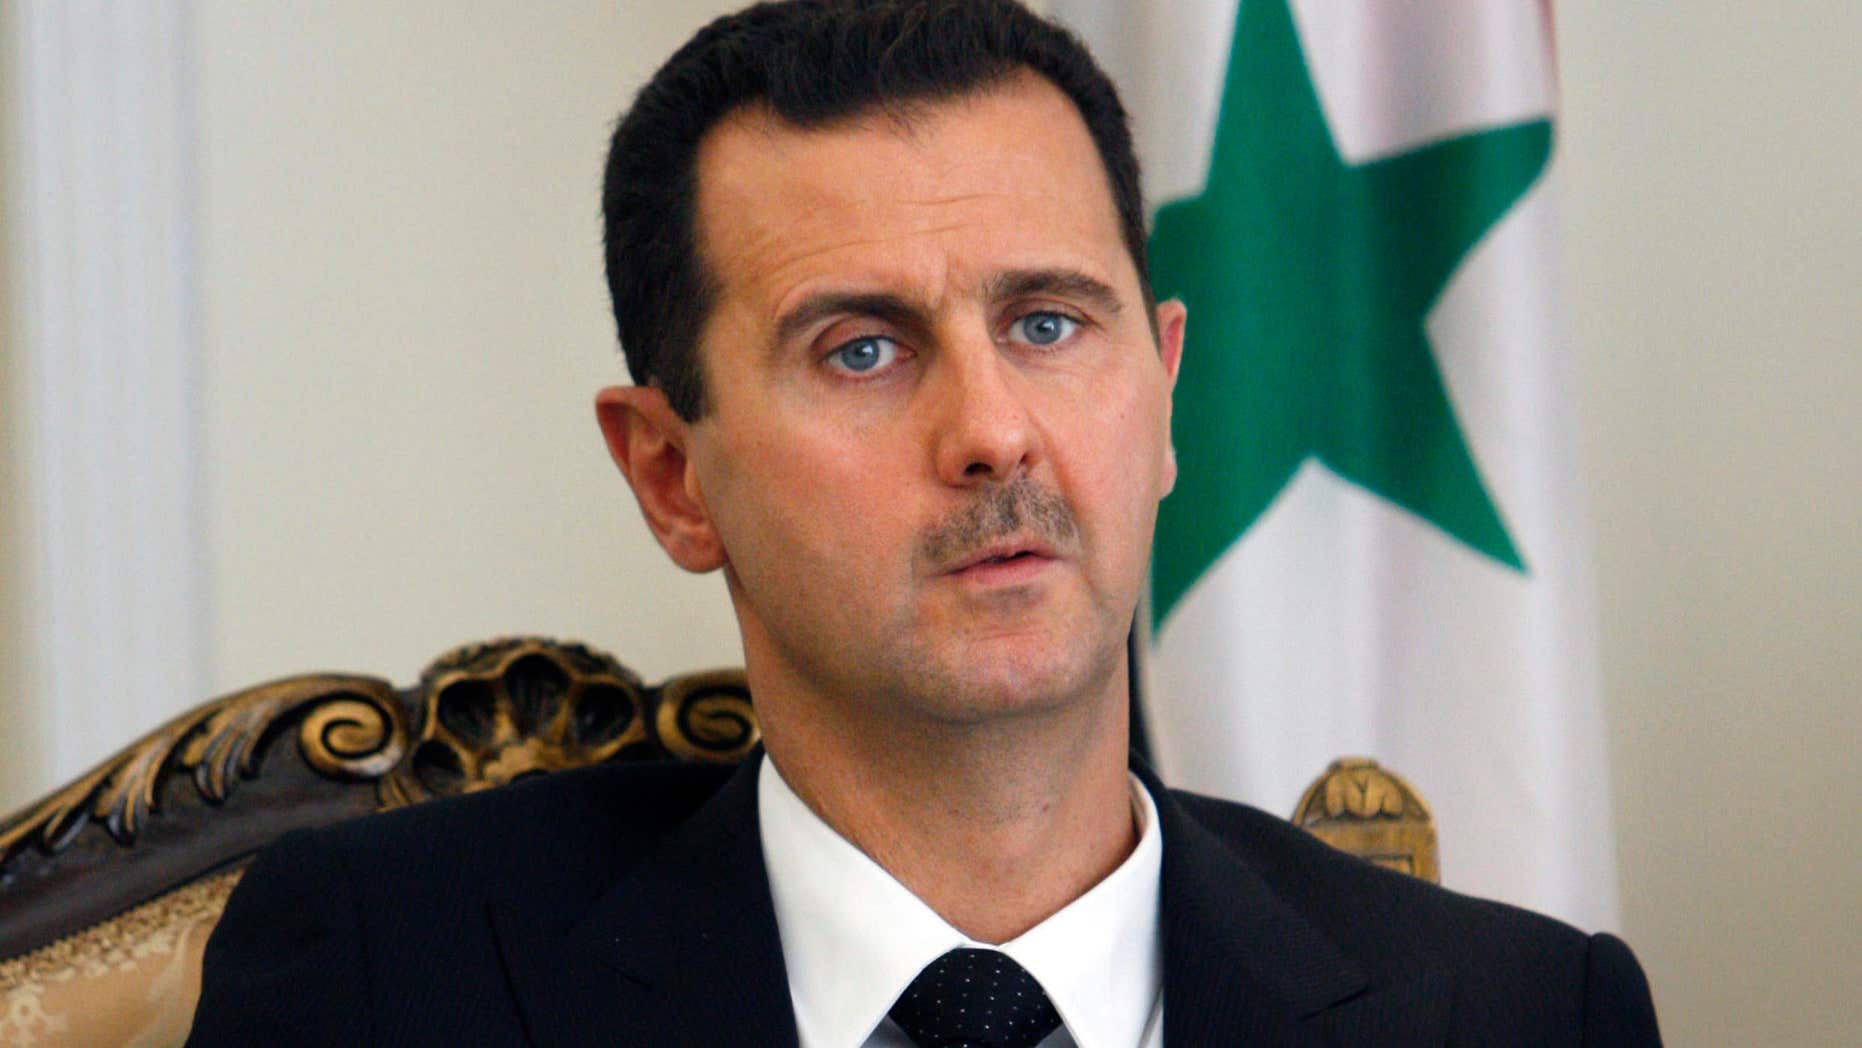 Aug. 19, 2009: This file photo shows Syrian President Bashar Assad during a meeting with his Iranian counterpart Mahmoud Ahmadinejad in Tehran, Iran.